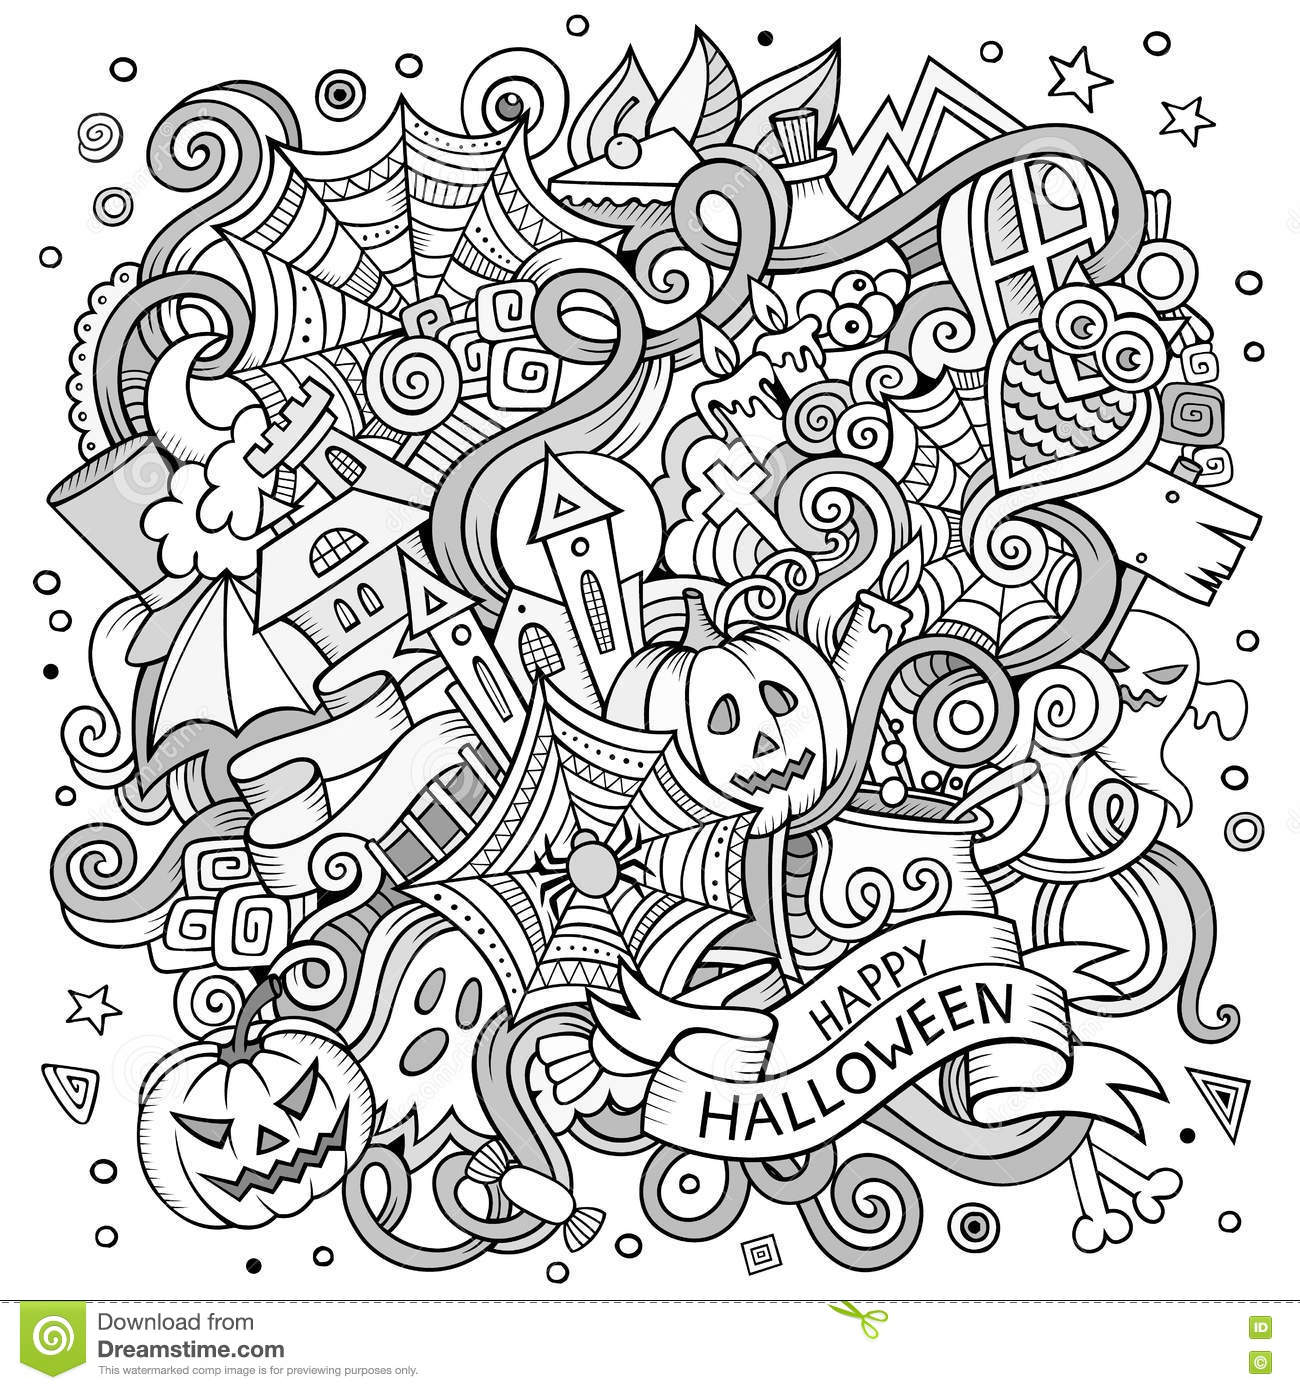 Cartoon cute doodles hand drawn halloween illustration for Coloring pages with lots of detail